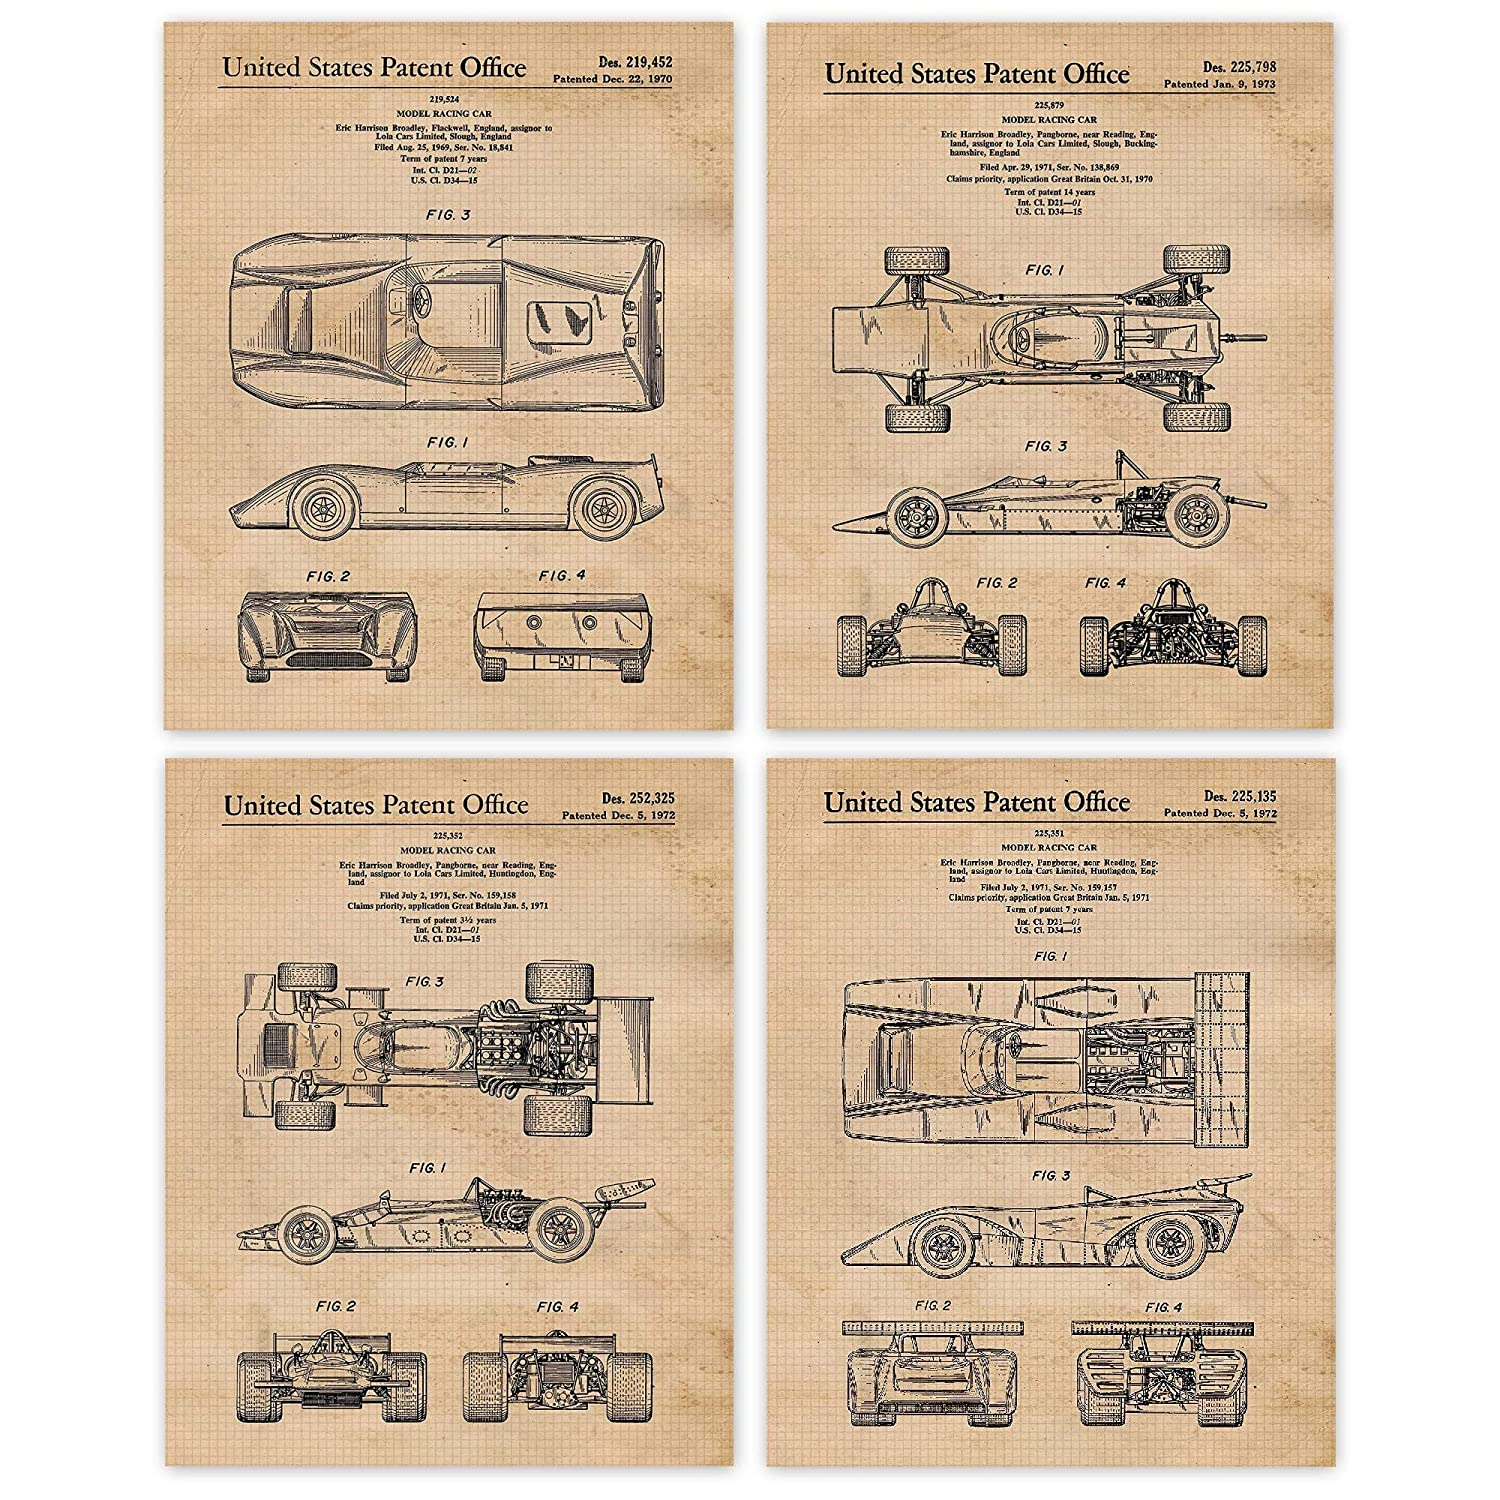 Amazon Com Vintage Racing Lola Cars Limited Patent Poster Prints Set Of 4 8x10 Unframed Photos Wall Art Decor Gifts Under 20 For Home Office Man Cave College Student Teacher F1 Motorsport